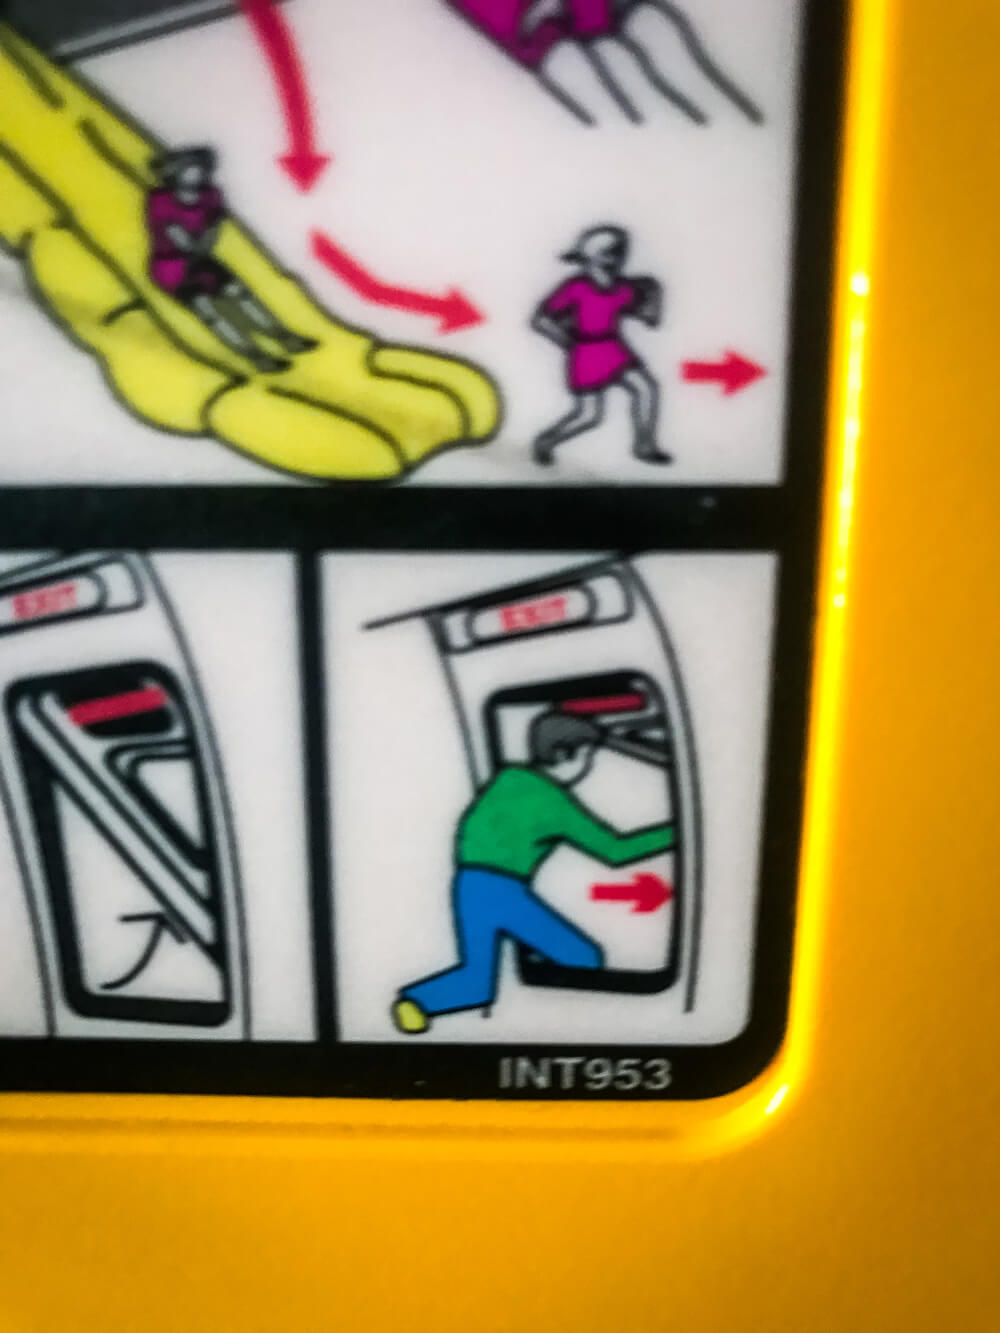 RyanAir safety instructions behind seat